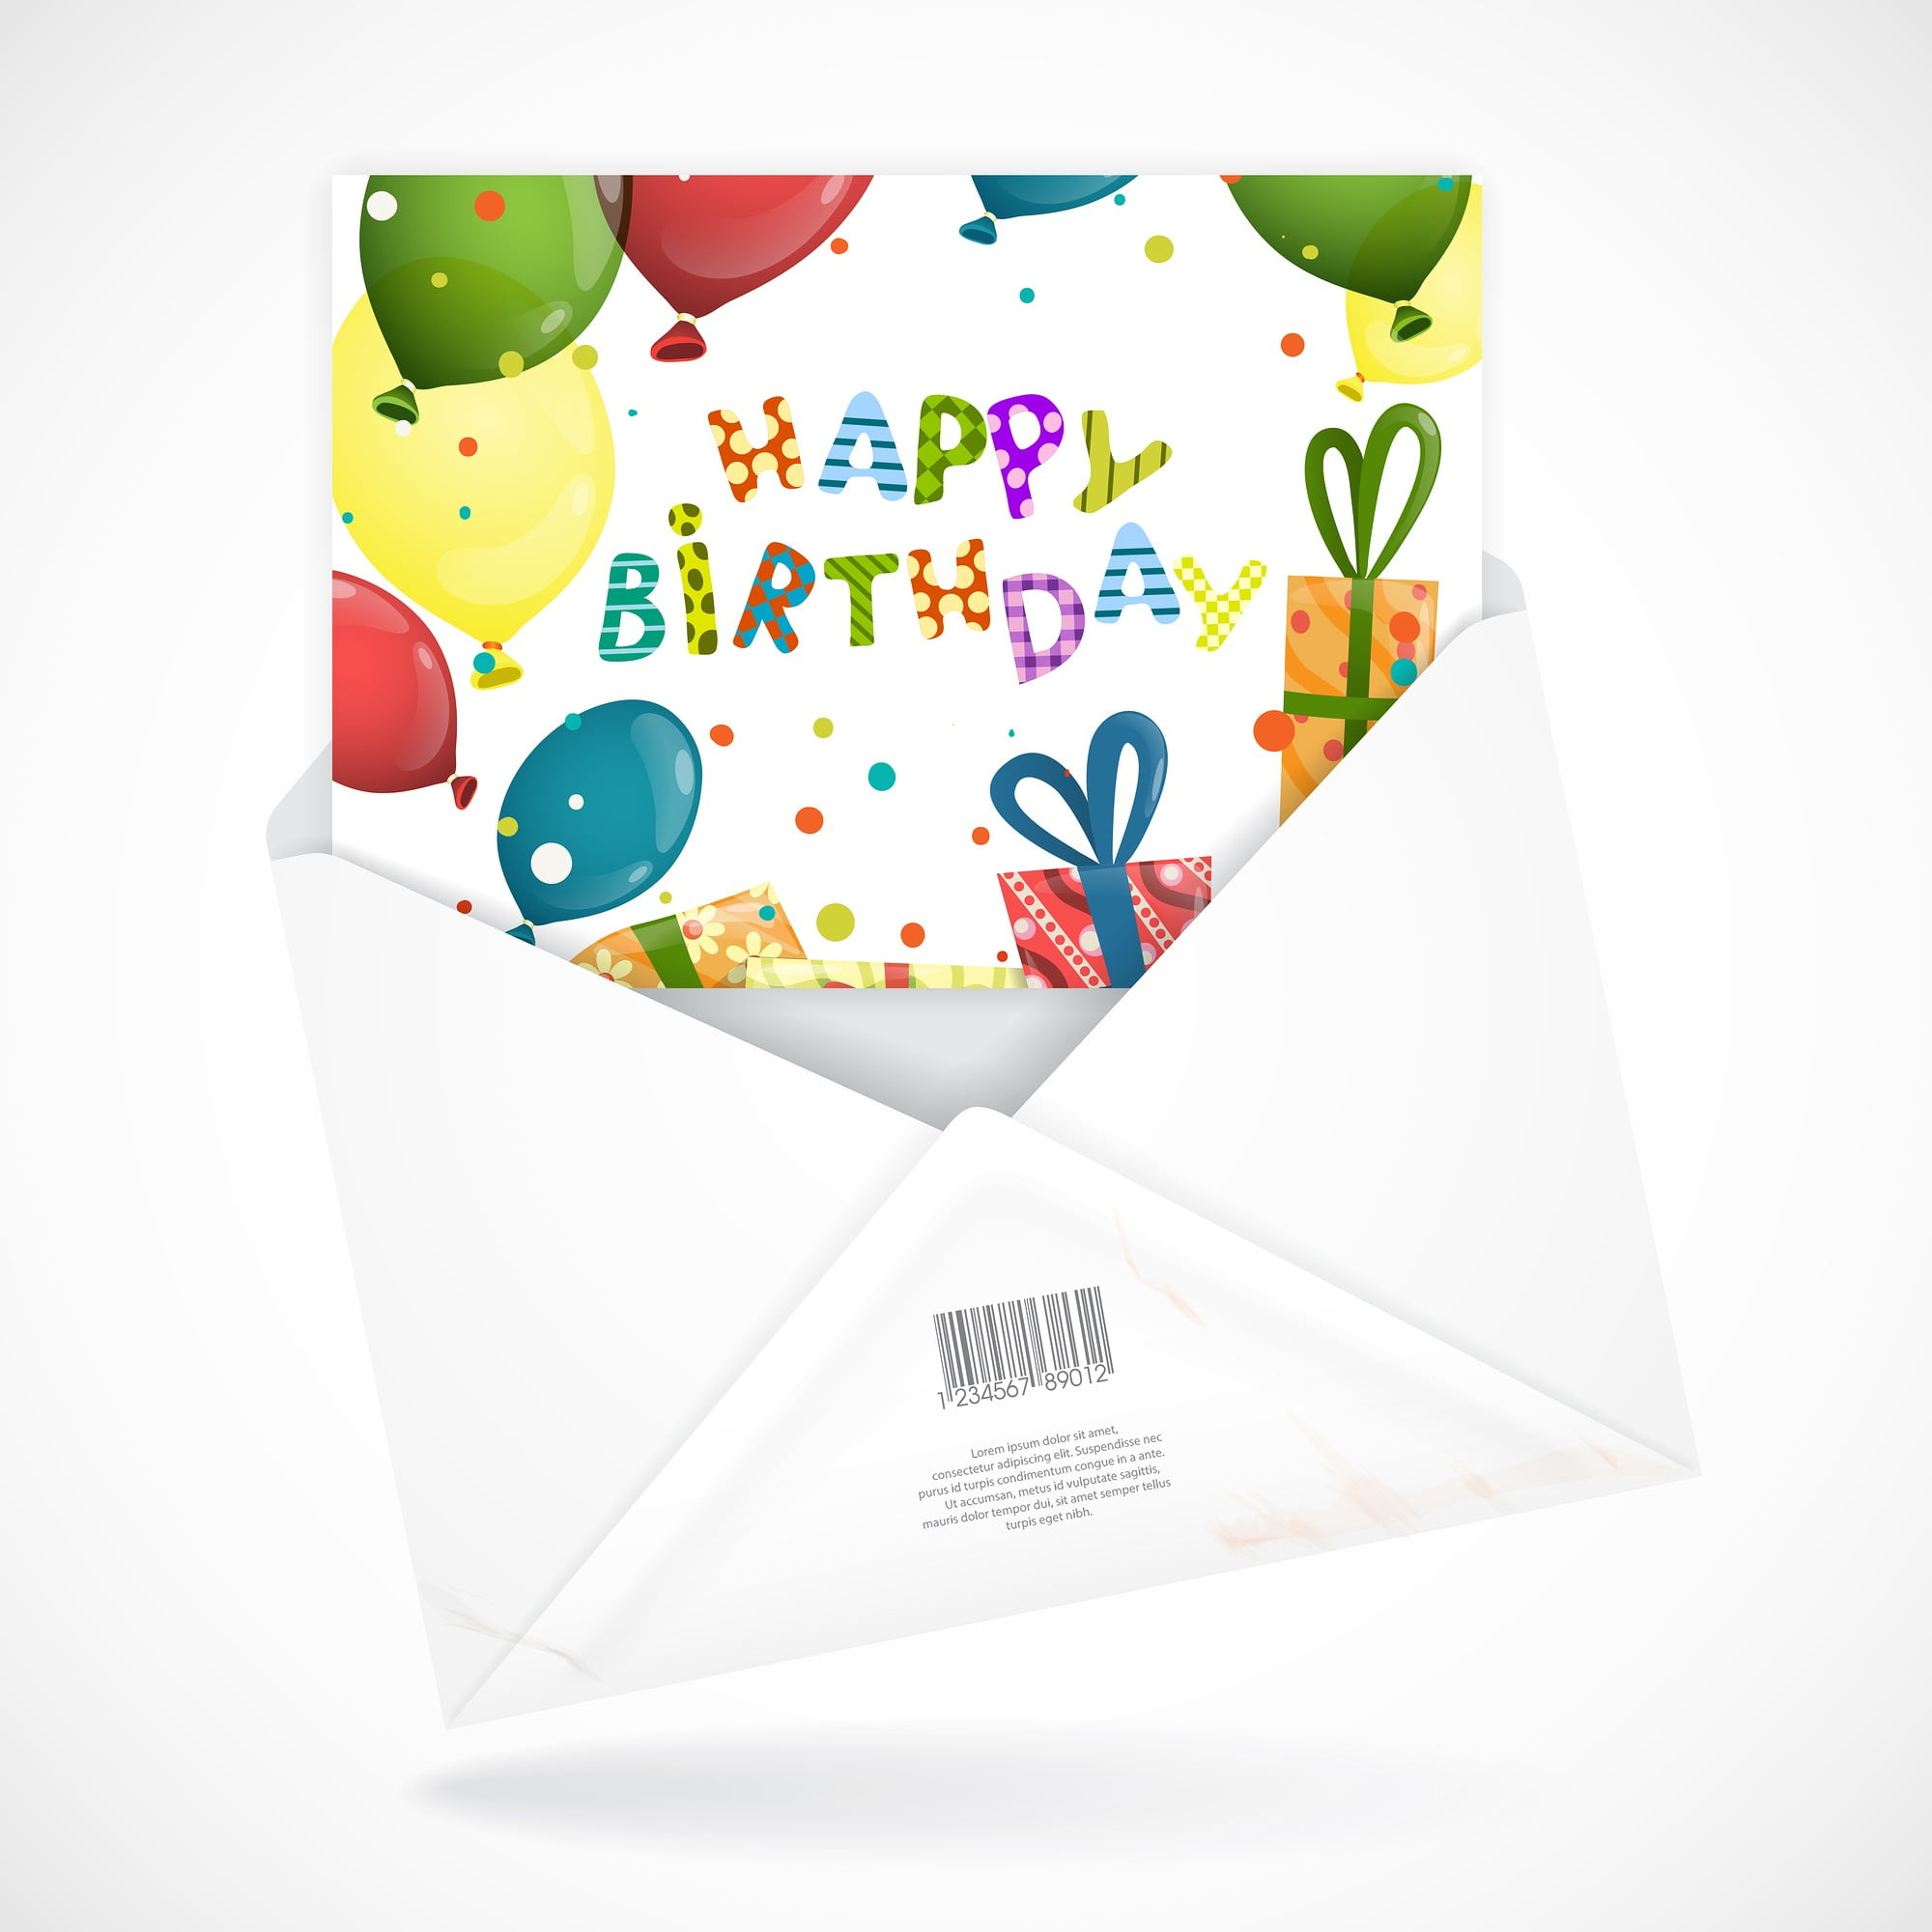 Birthday Cards For Business Can Improve Customer Retention ...